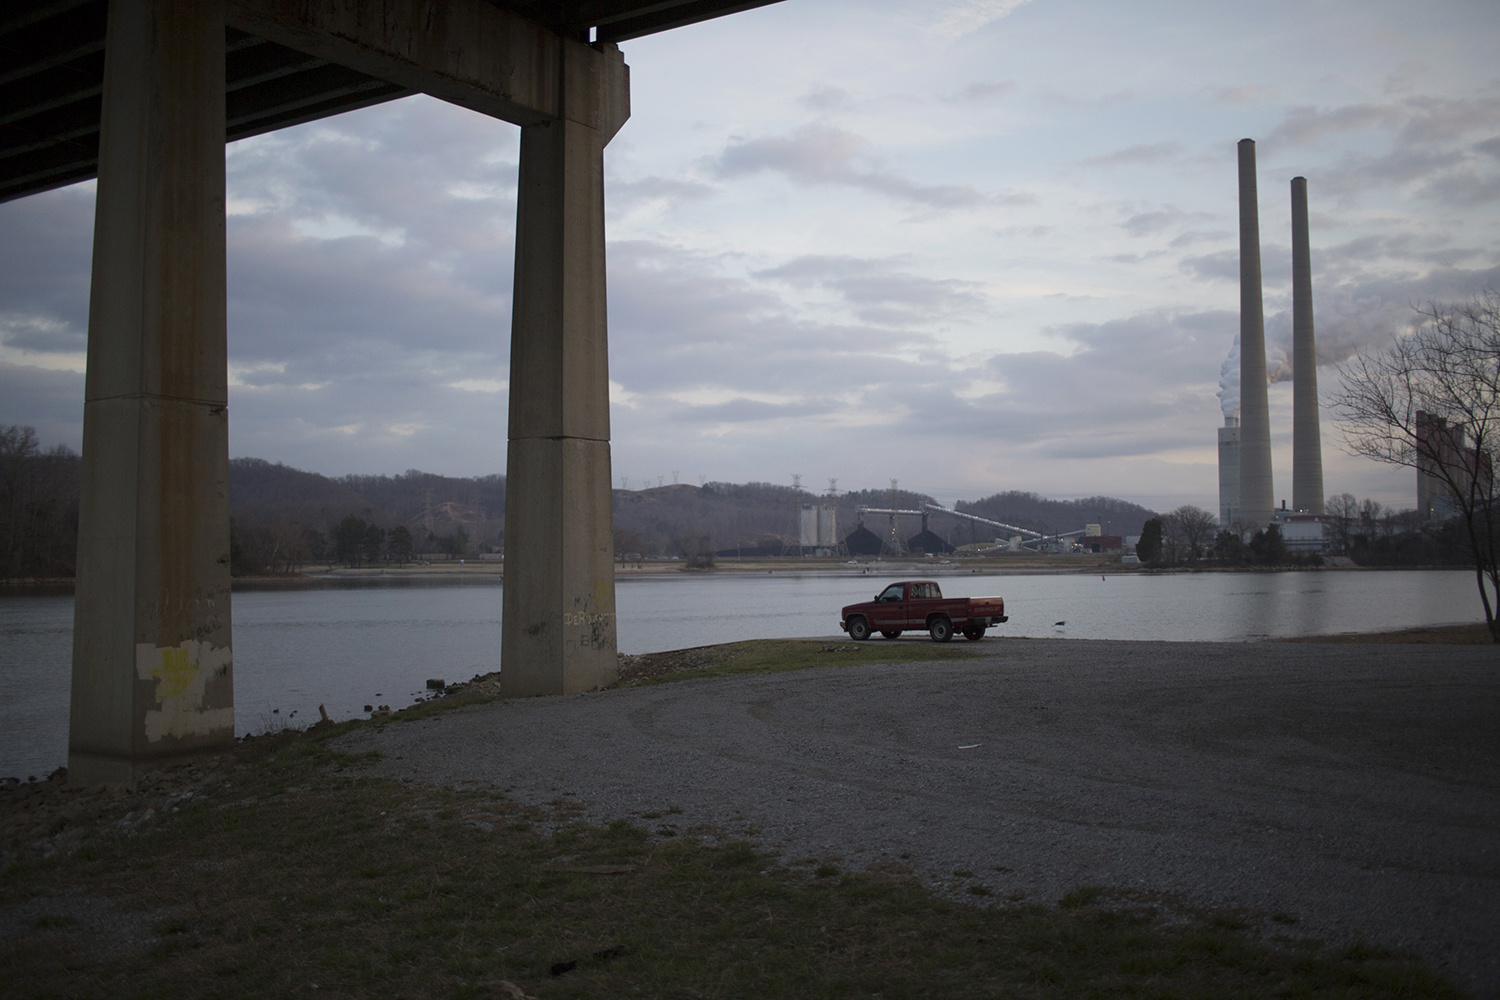 Nathan Armes . March 15, 2014. Kingston, Roane County, Tennessee. My grandfather's truck sits under I-40 where the highway crosses the Clinch River in Roane County. The smokestacks of the Kingston Fossil Plant, managed by the Tennessee Valley Authority in Kingston, have dominated the small town's skyline since the 1950s. The plant burns about 14,000 tons of coal a day.